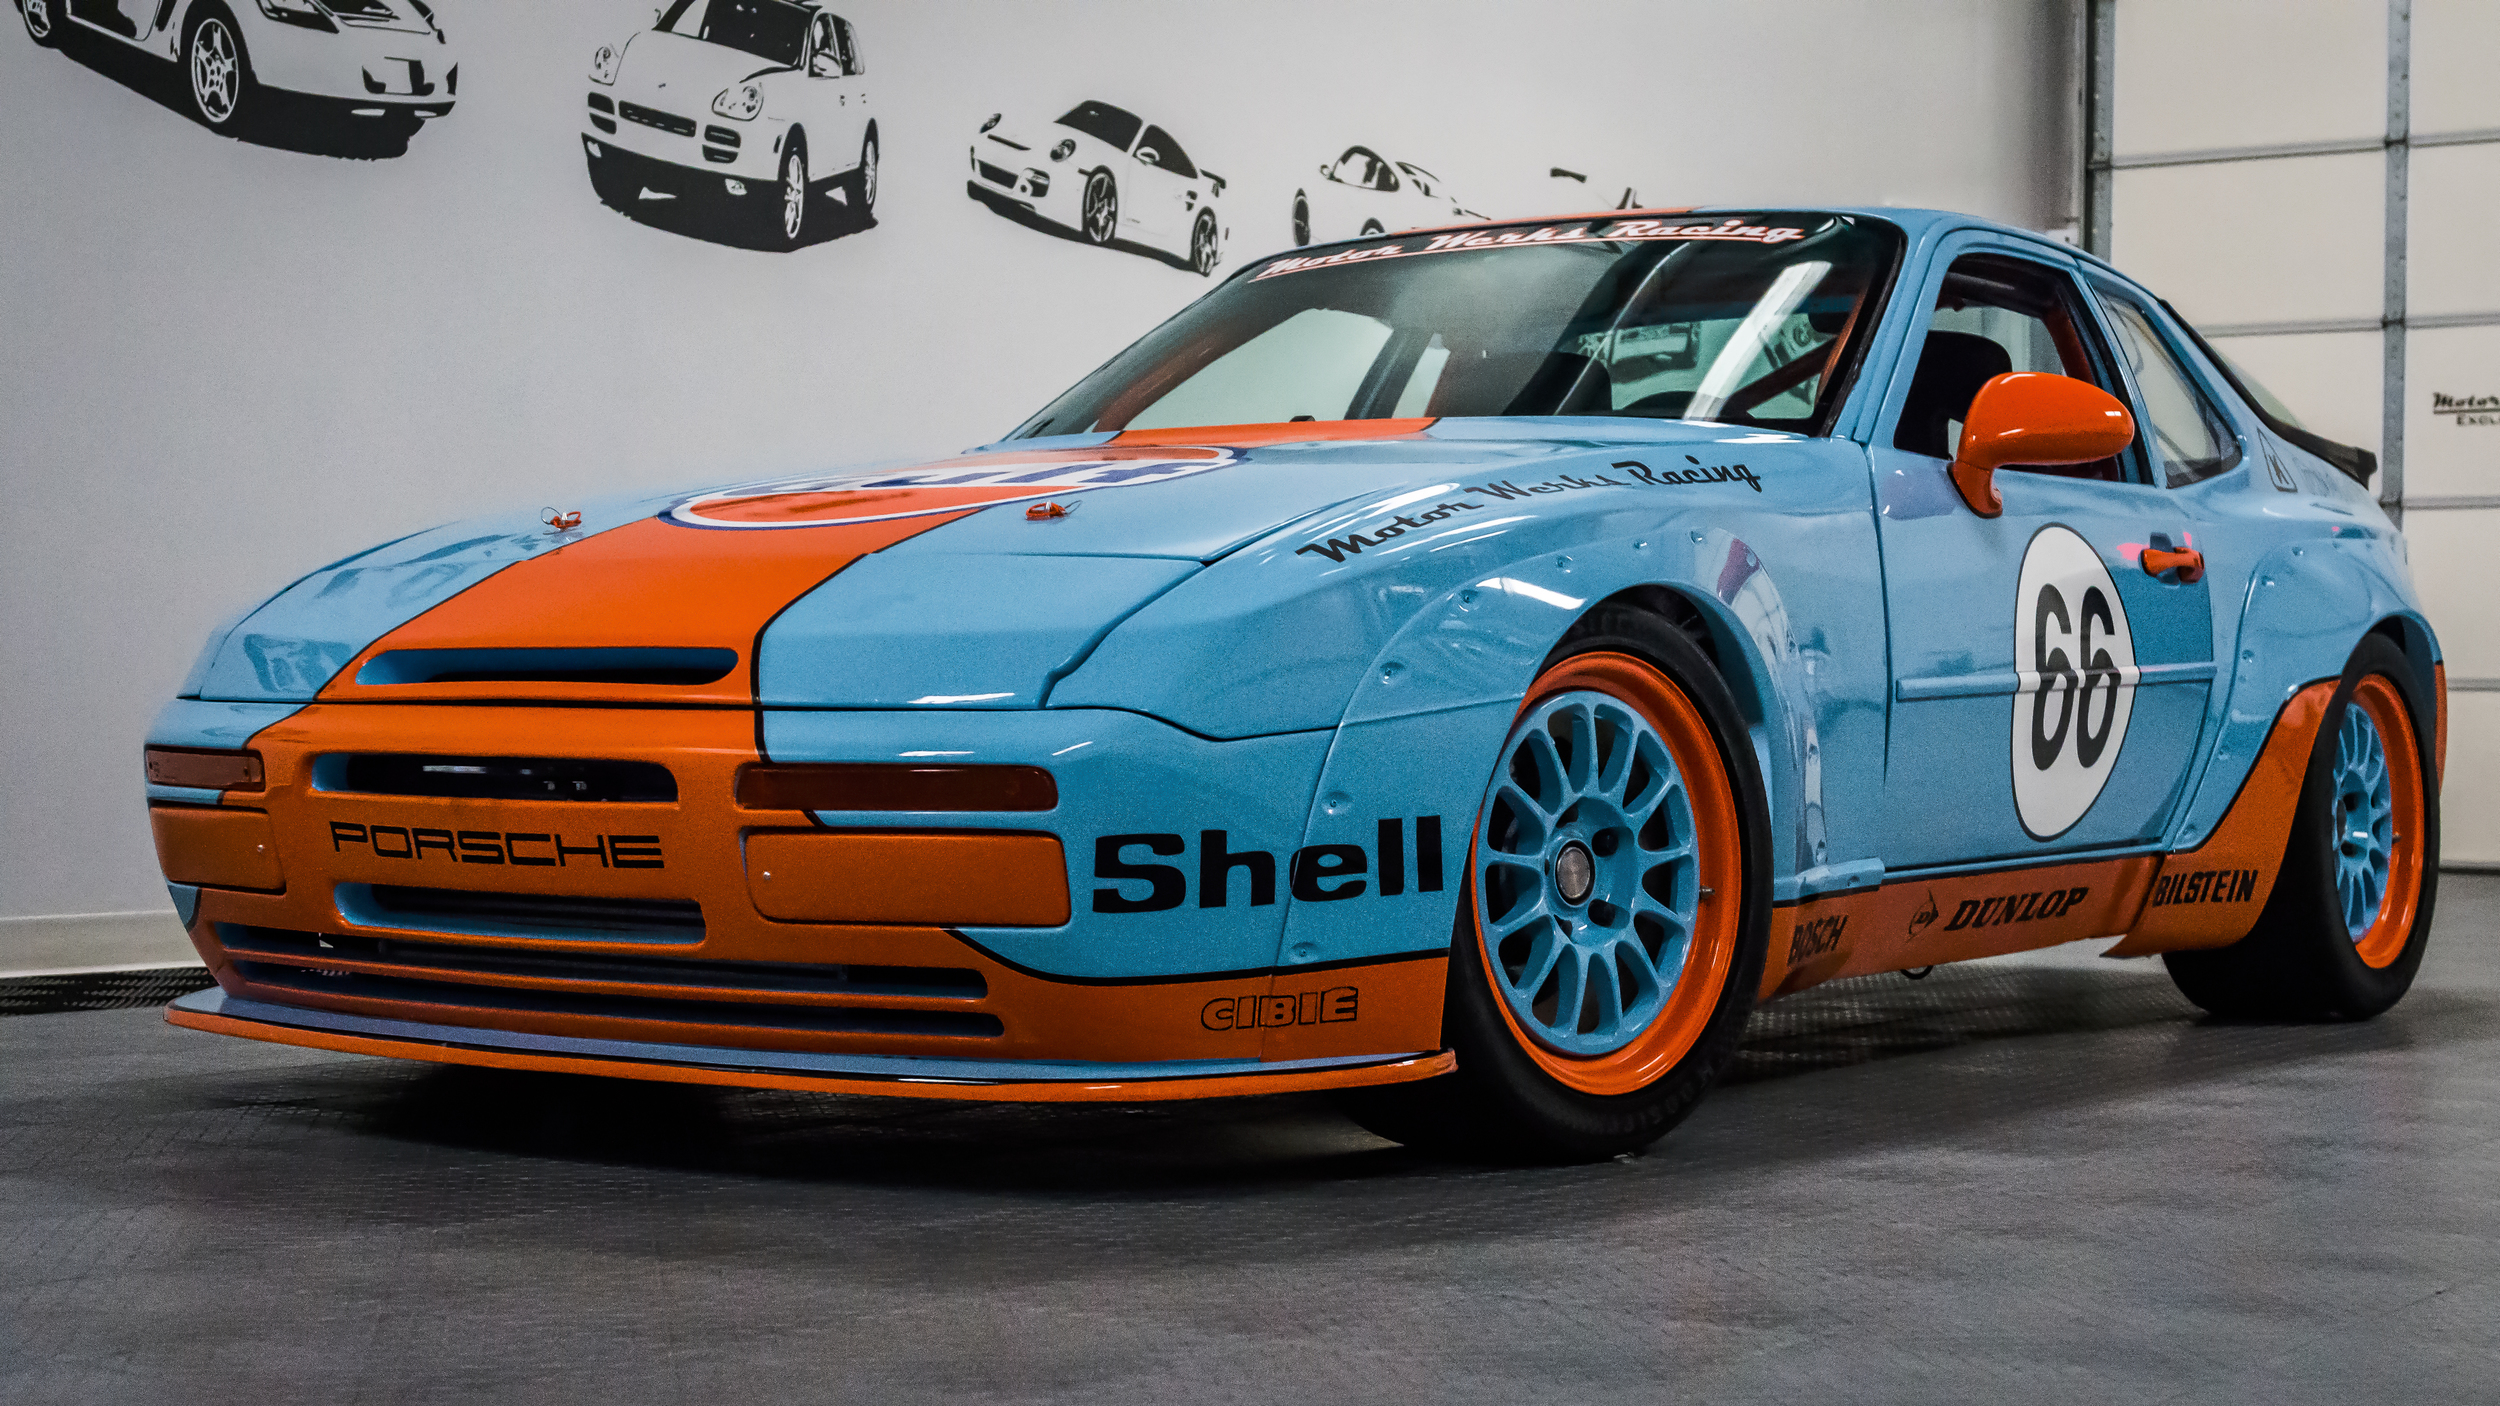 Motor Werks Racing Porsche 944 Gulf Tribute powered with our 1.8T Engine Conversion